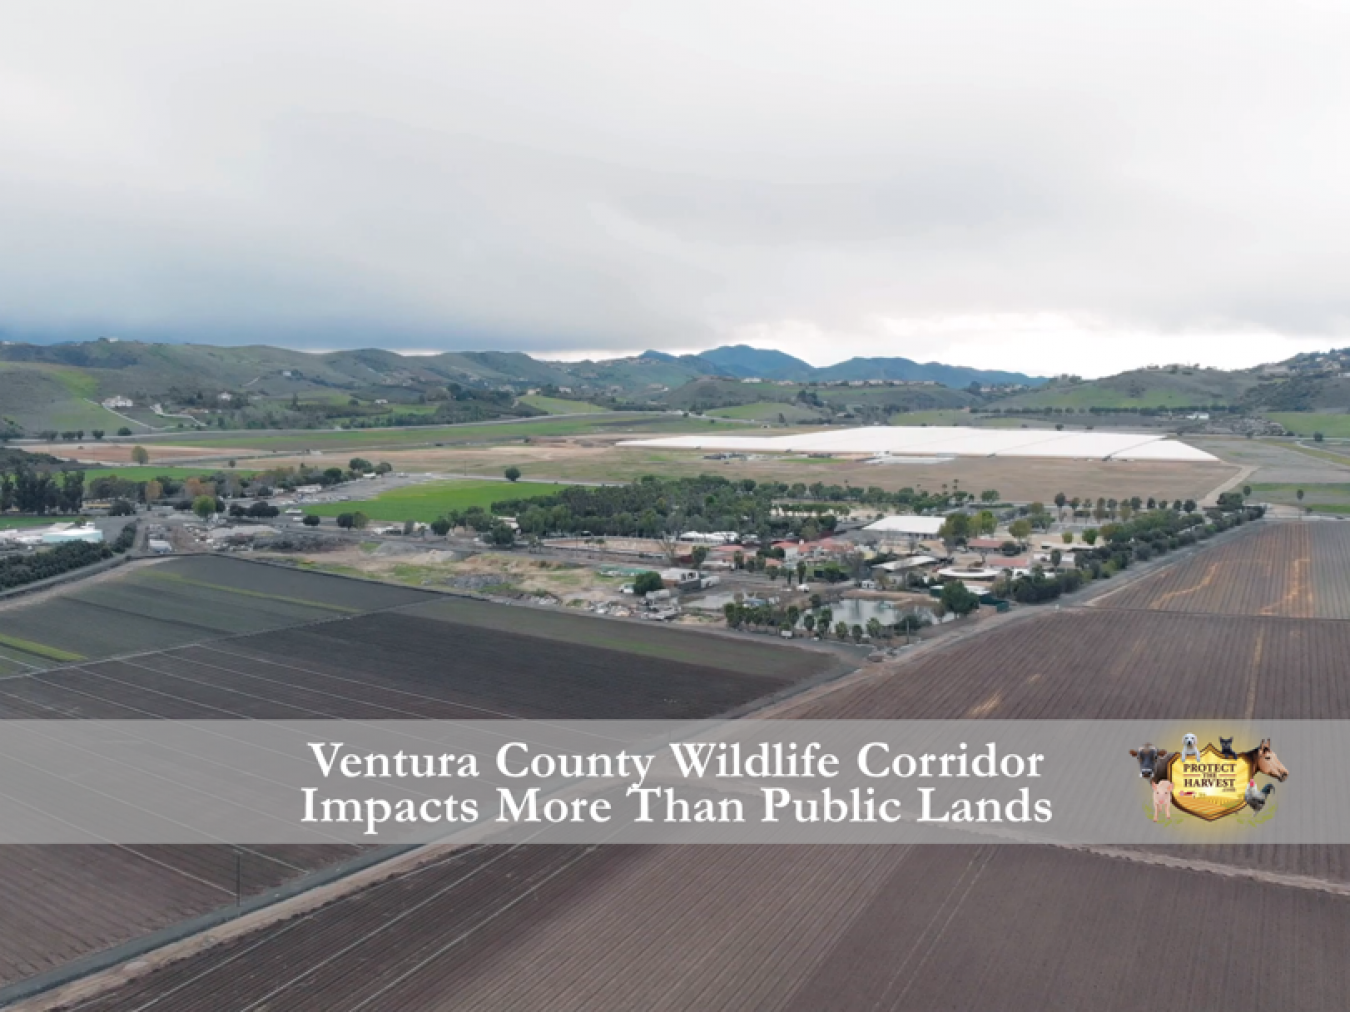 30% of Ventura County Facing Prohibitive and Dangerous Regulations